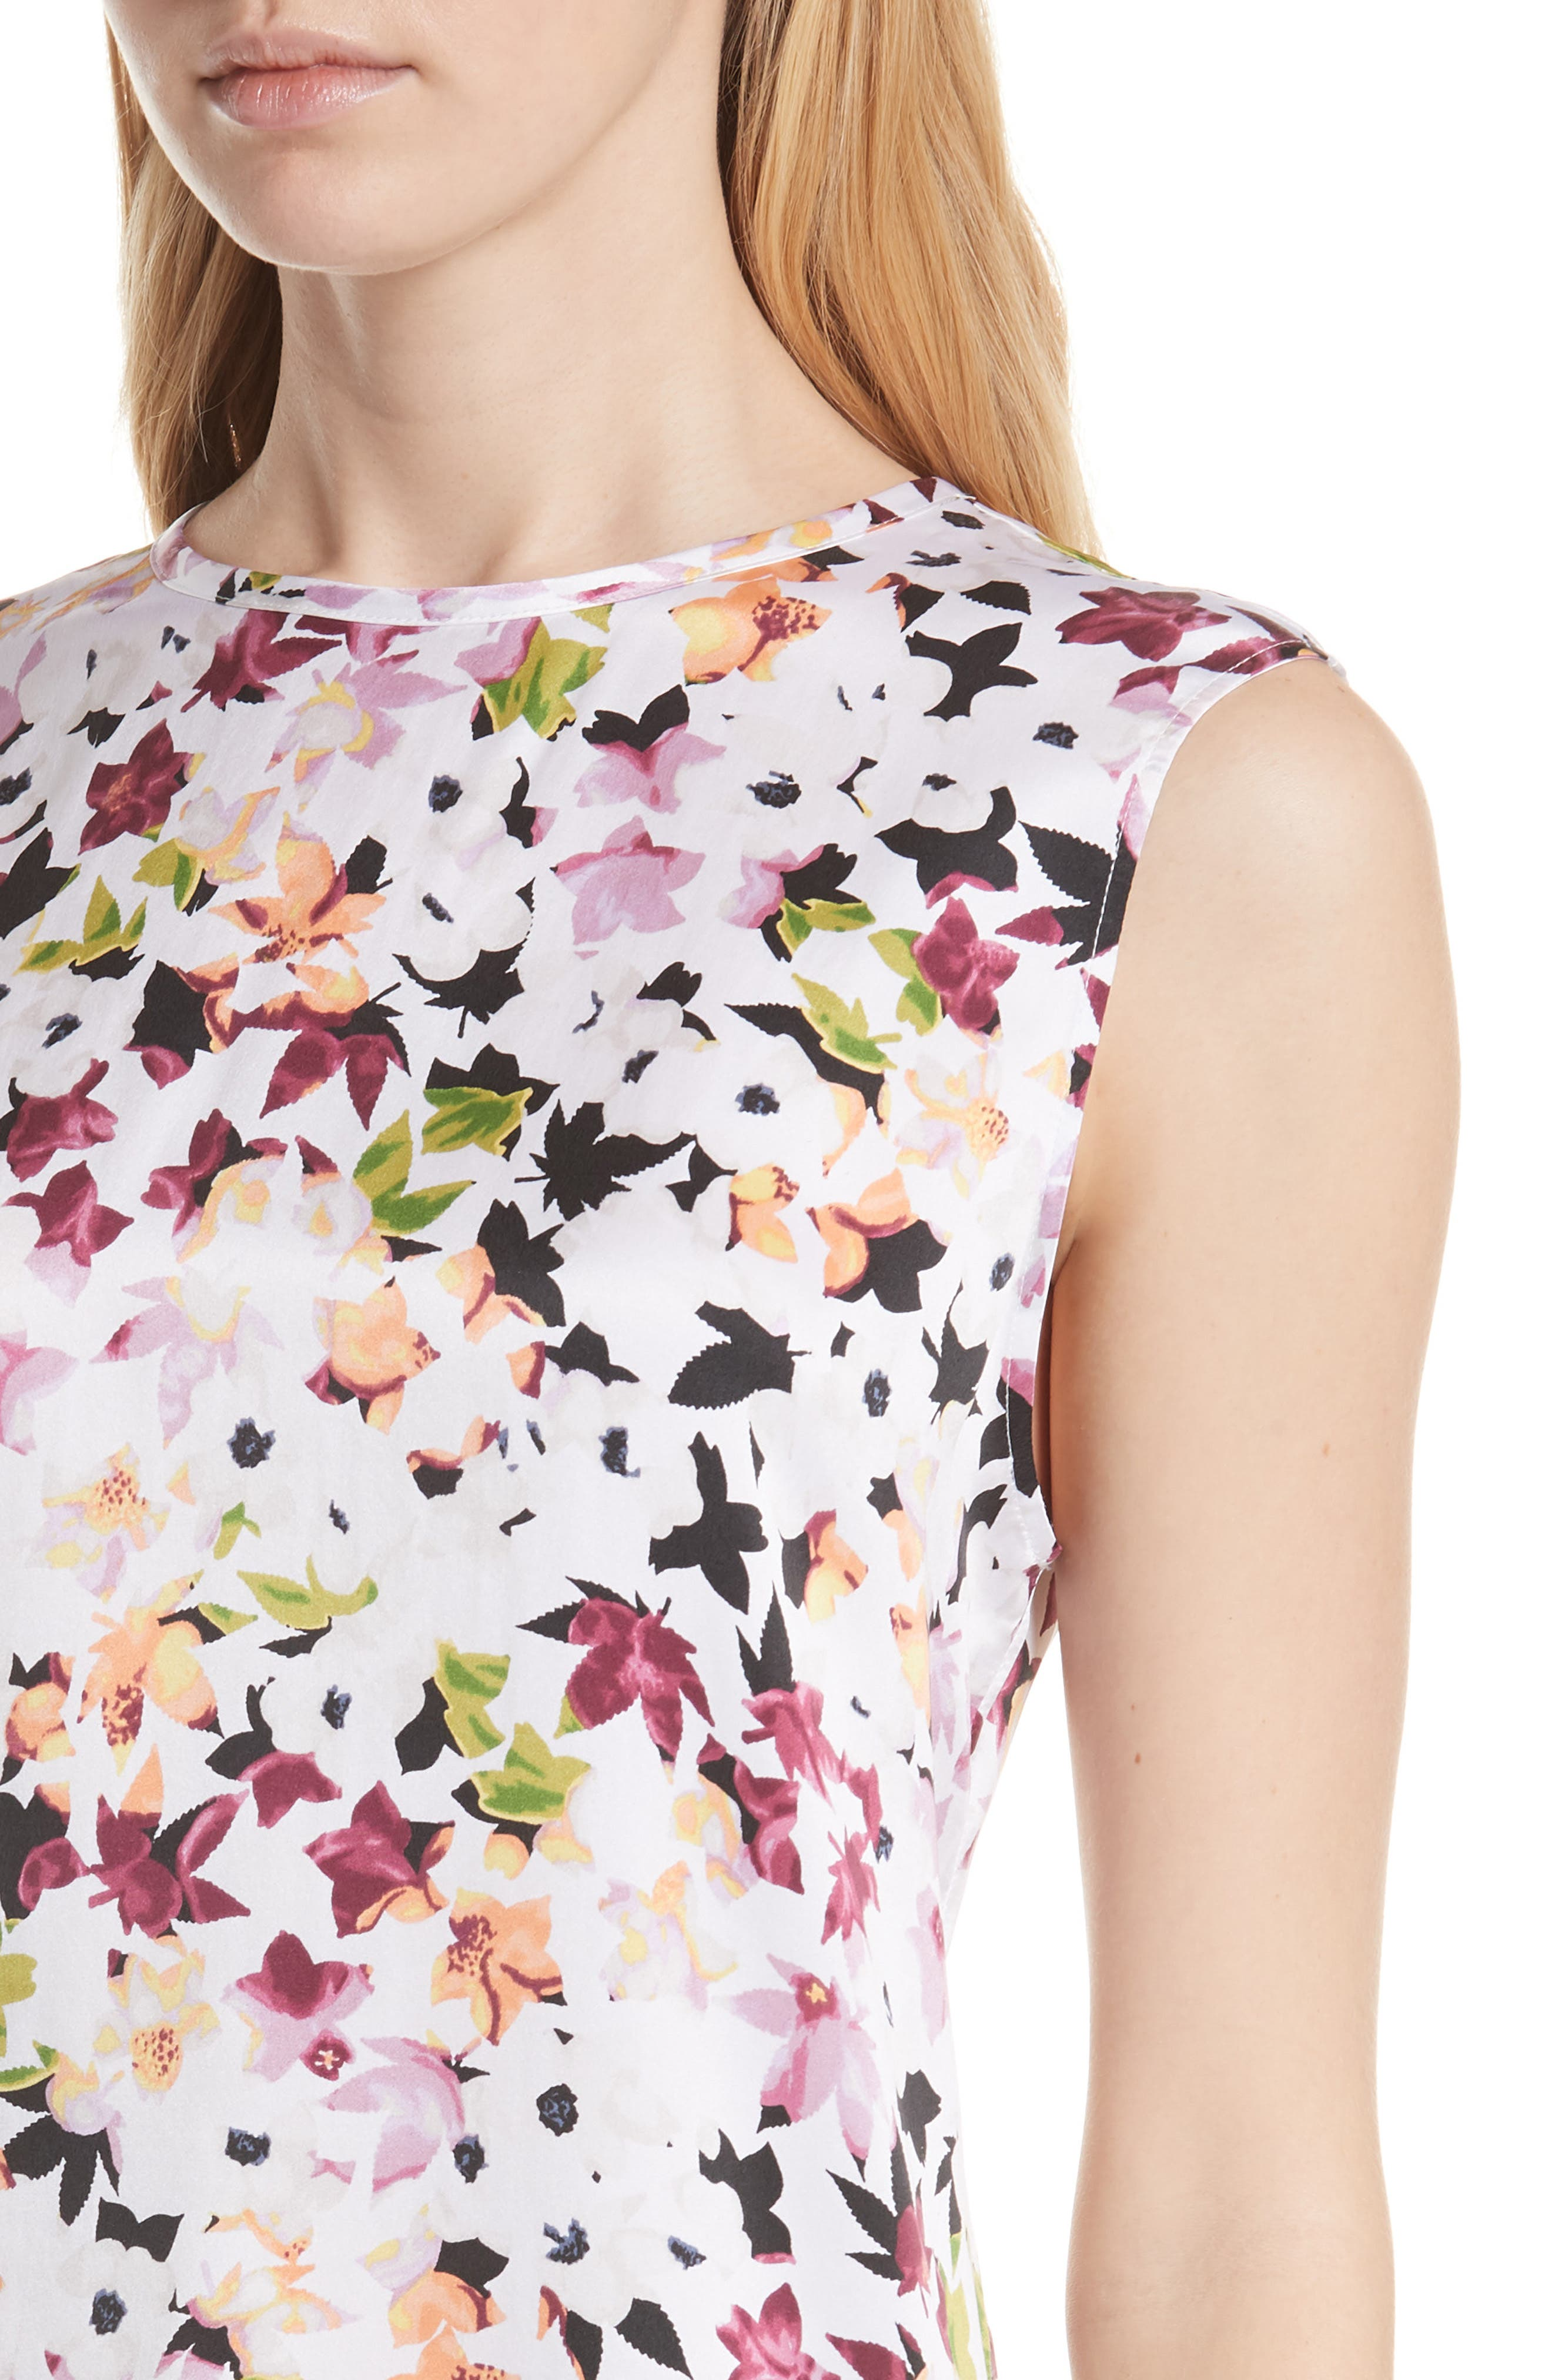 Layla Floral Silk Top,                             Alternate thumbnail 4, color,                             118